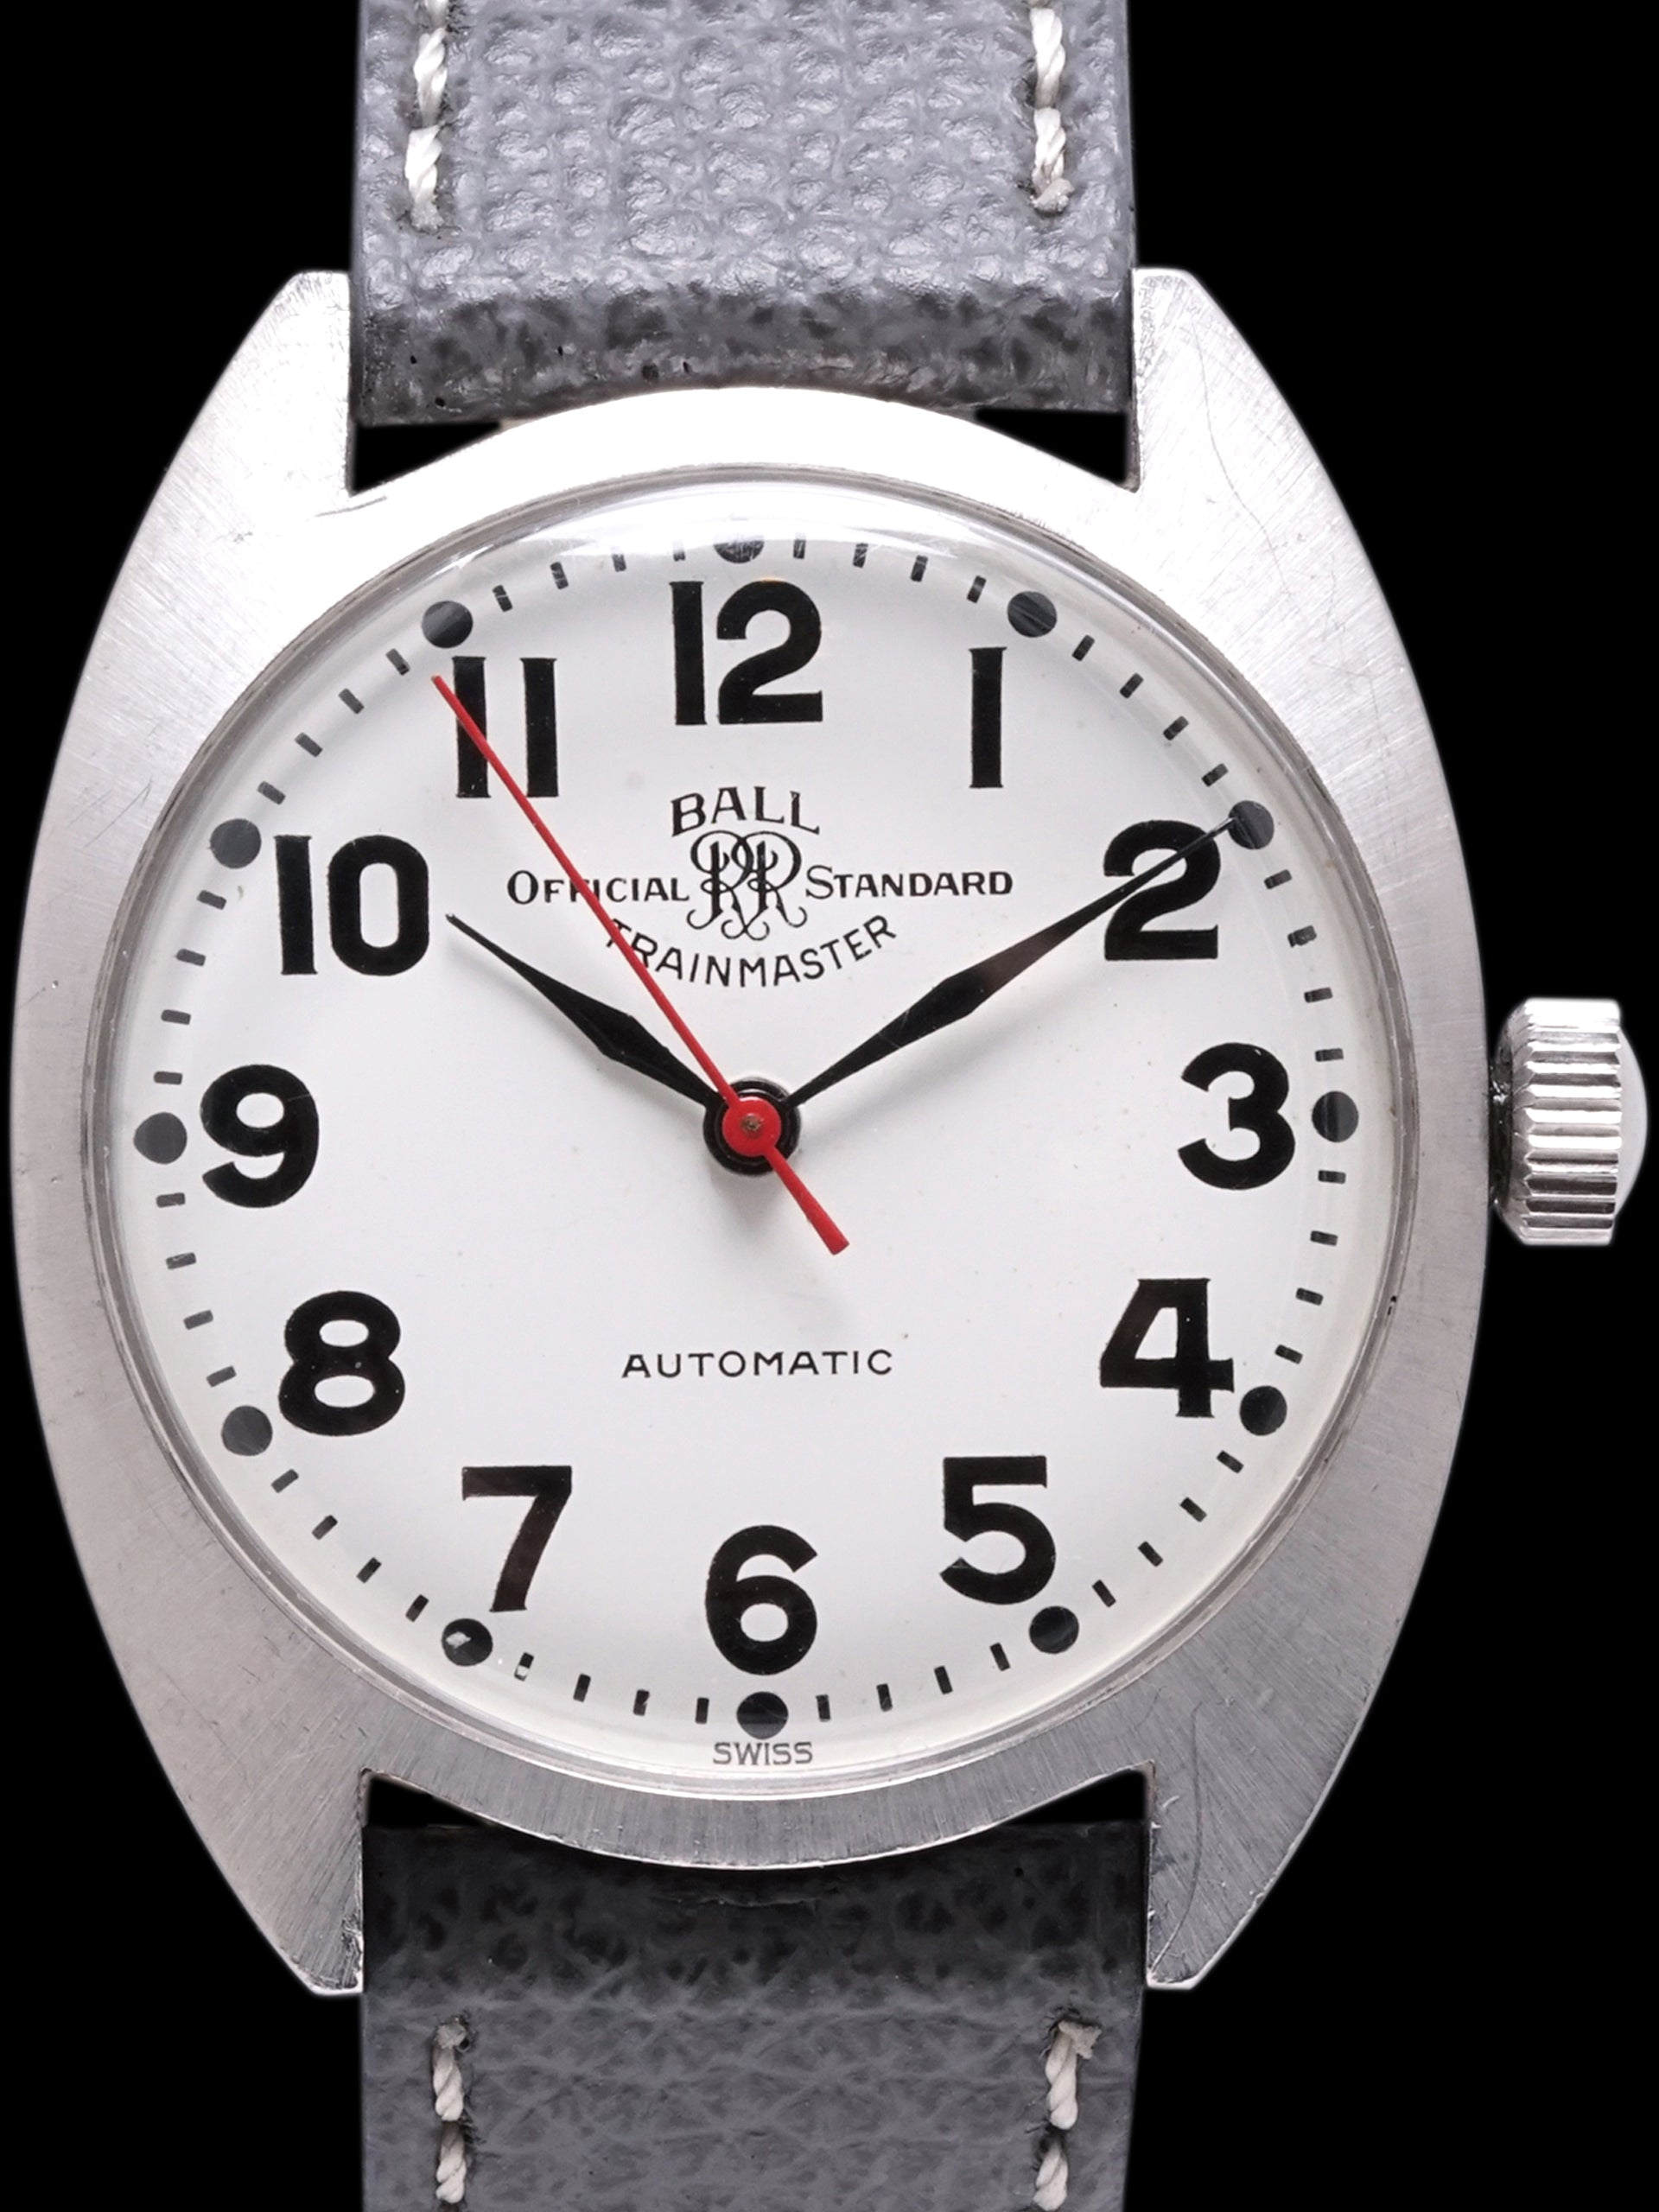 Ball Trainmaster Automatic Ref. 2822